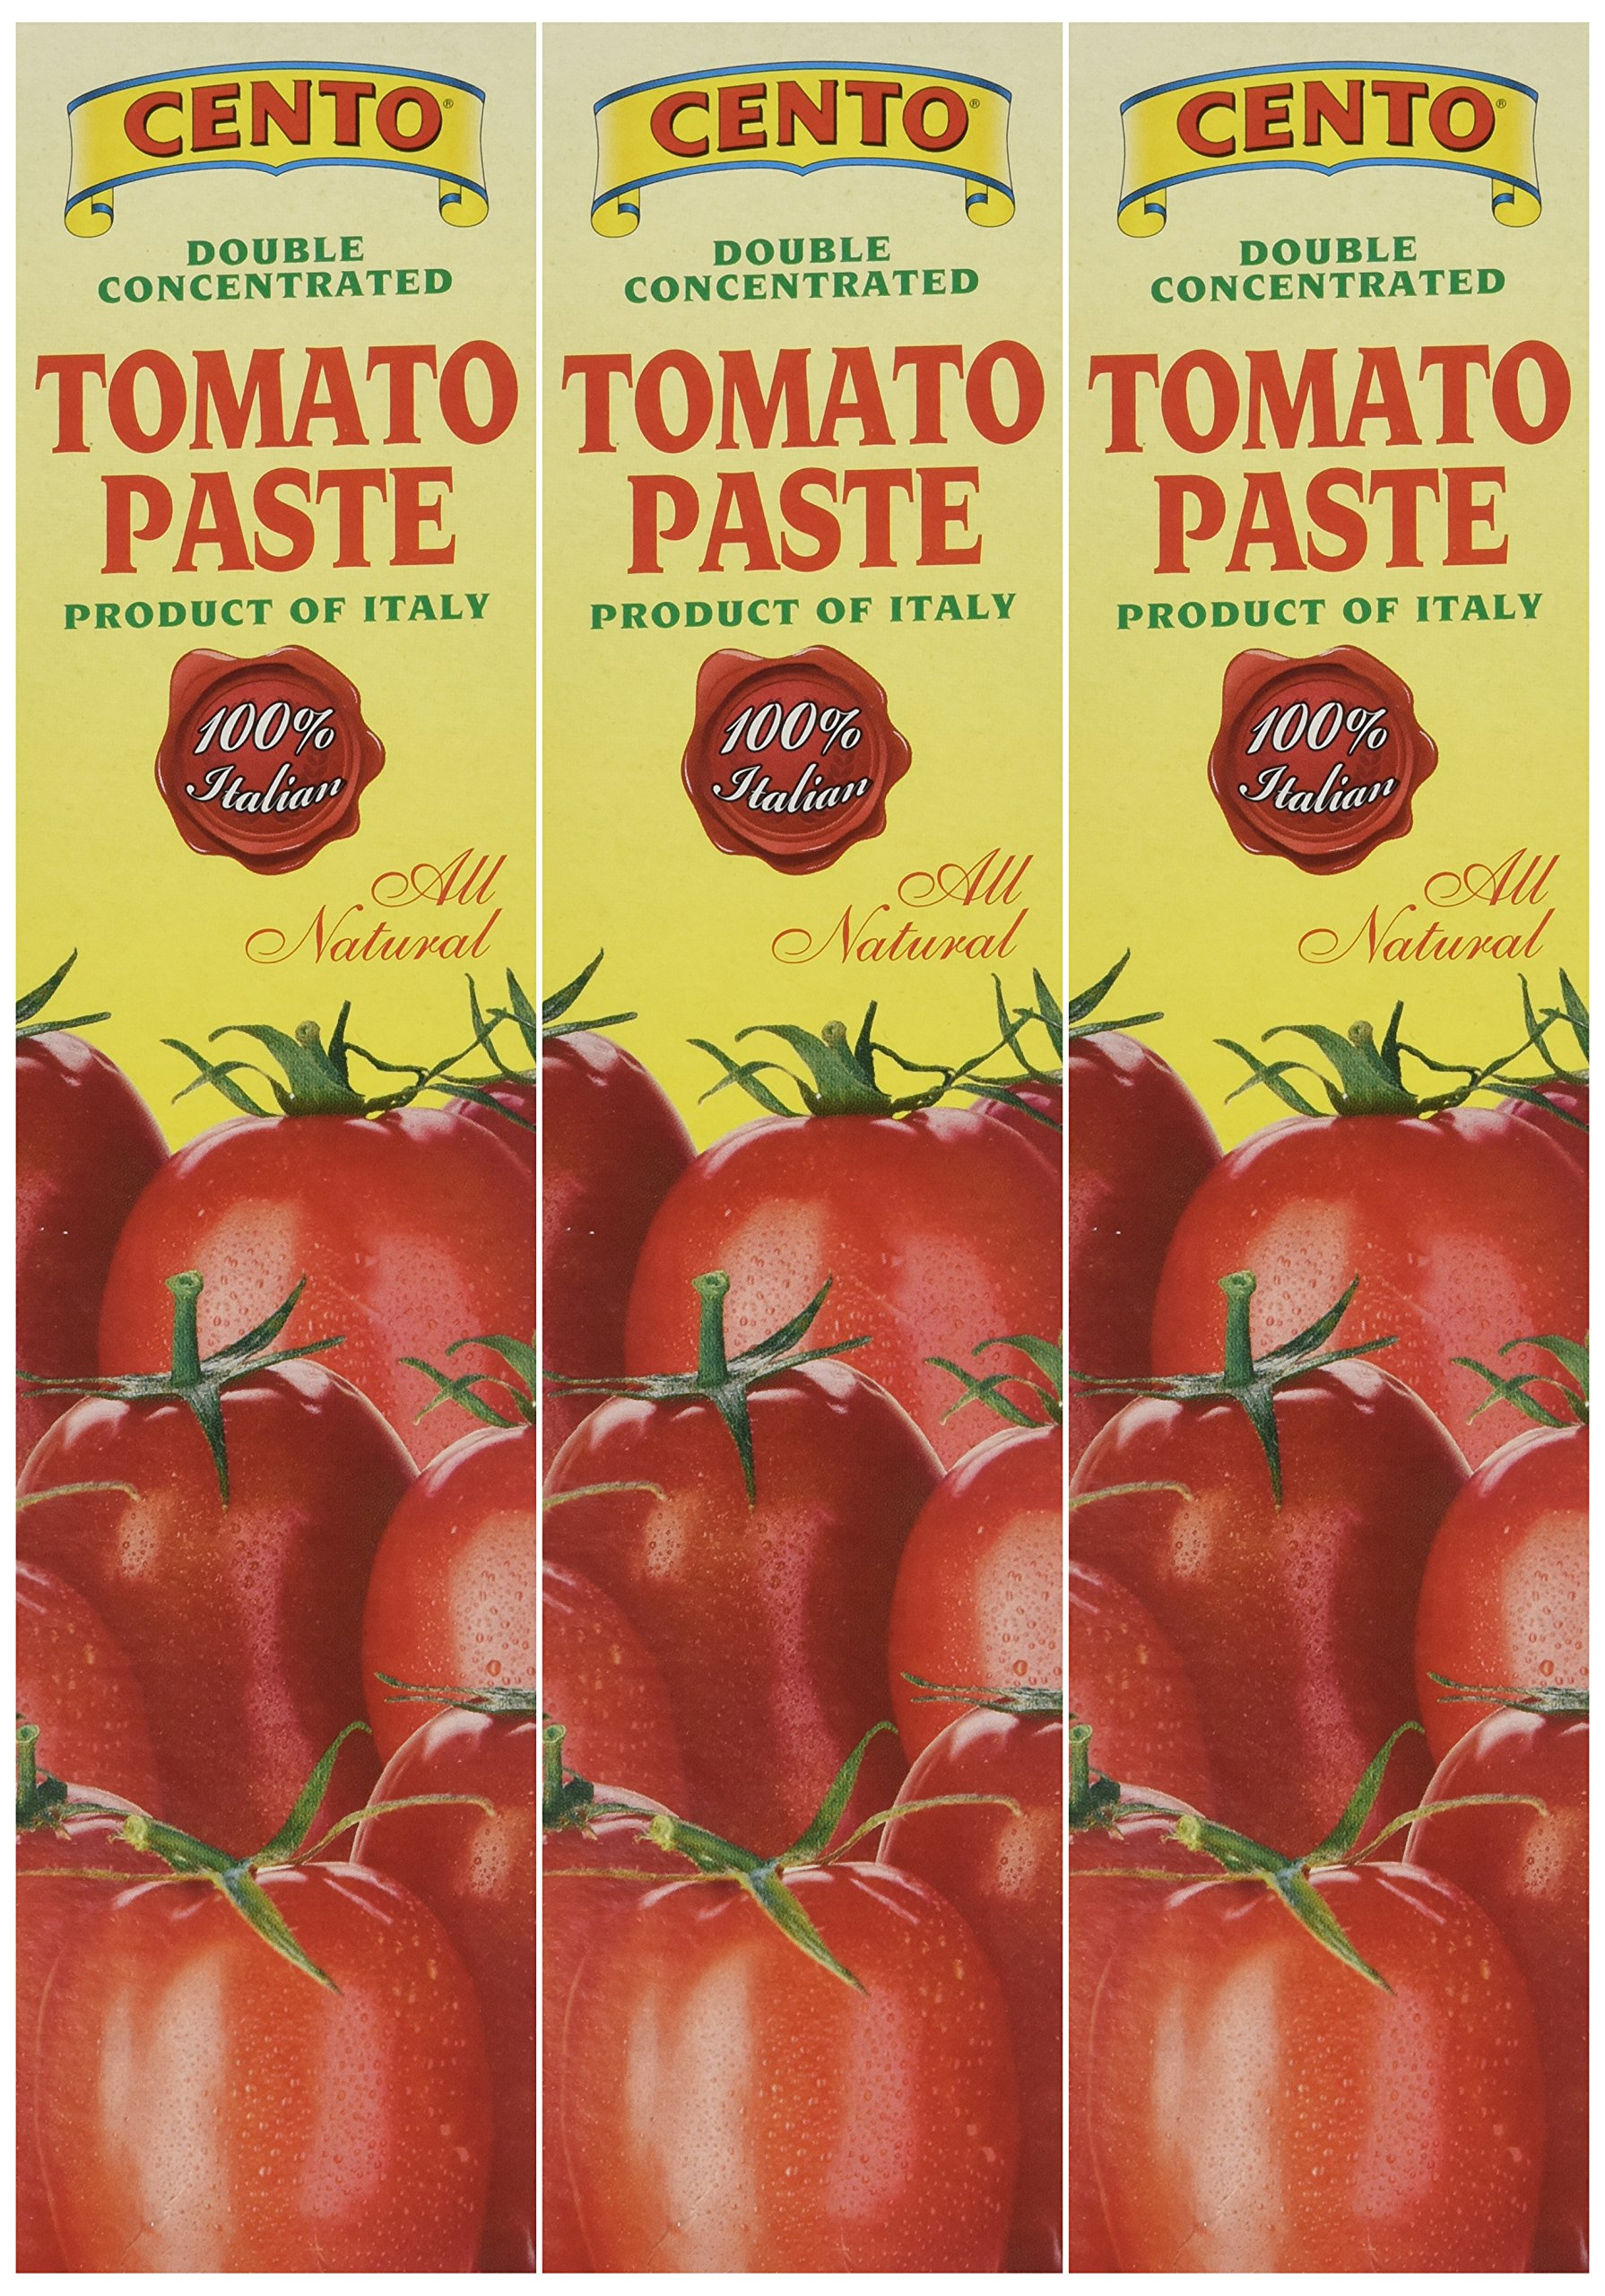 Cento Tomato Paste in Tube 4.56 oz,Pack of 3 by Cento